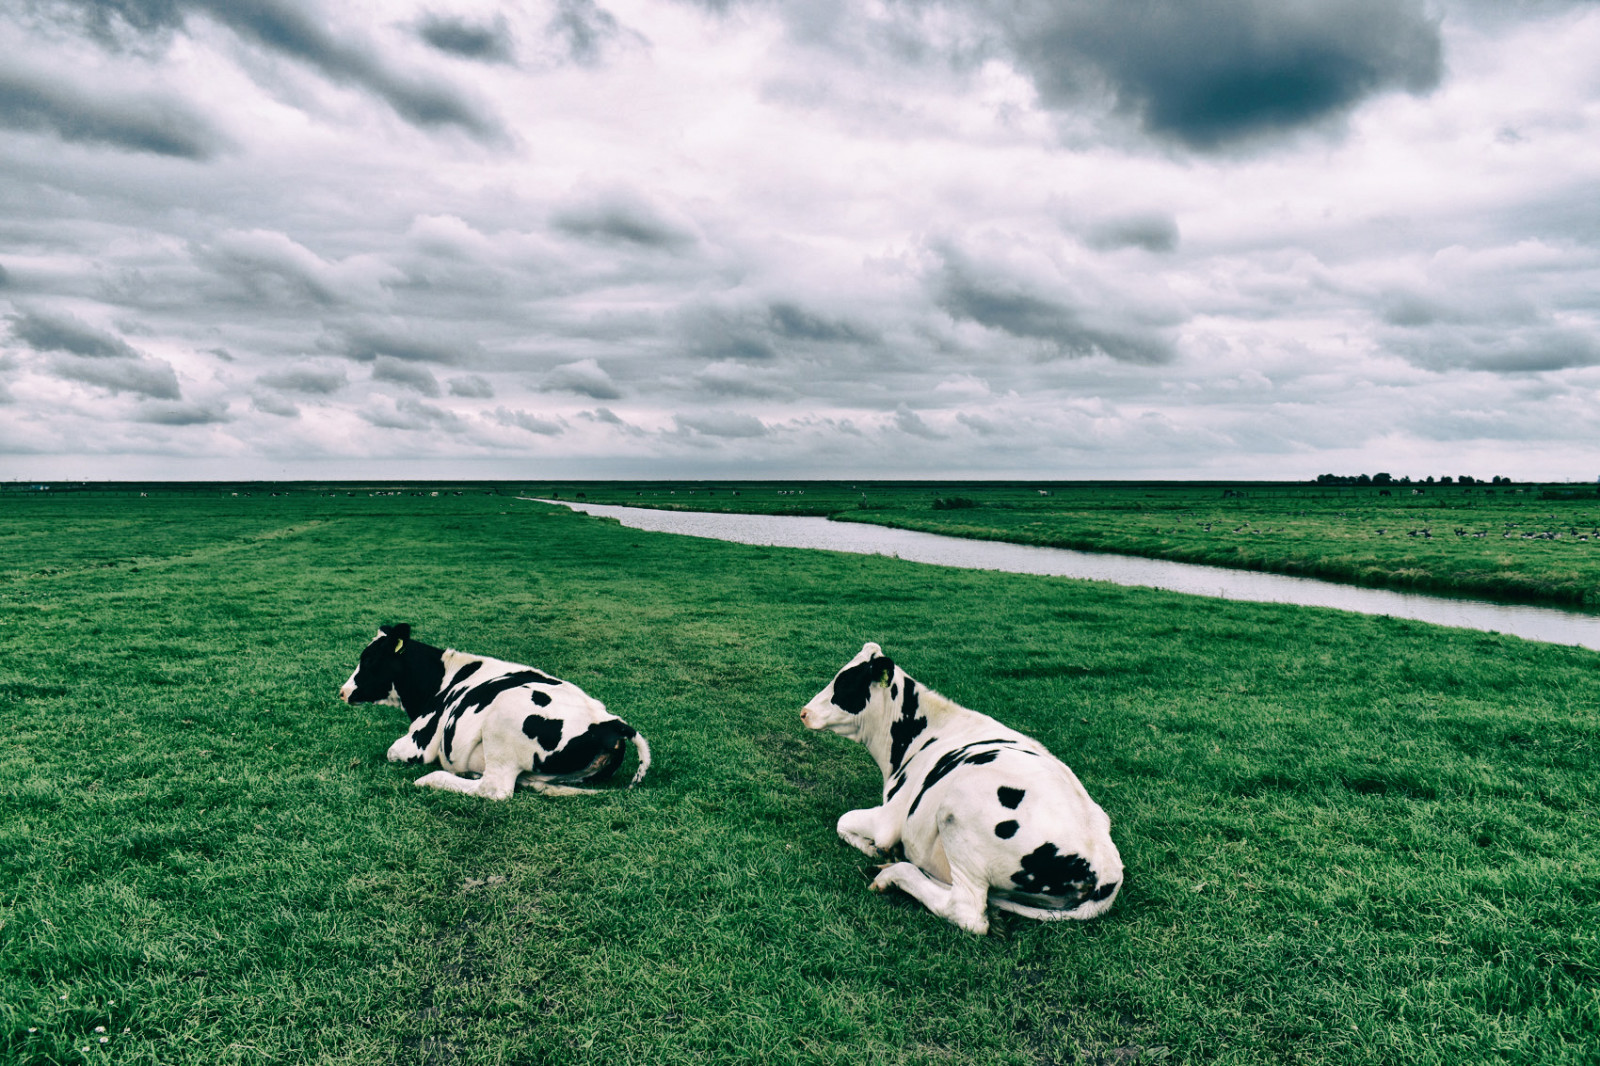 dutch-cheese-cows-meadow